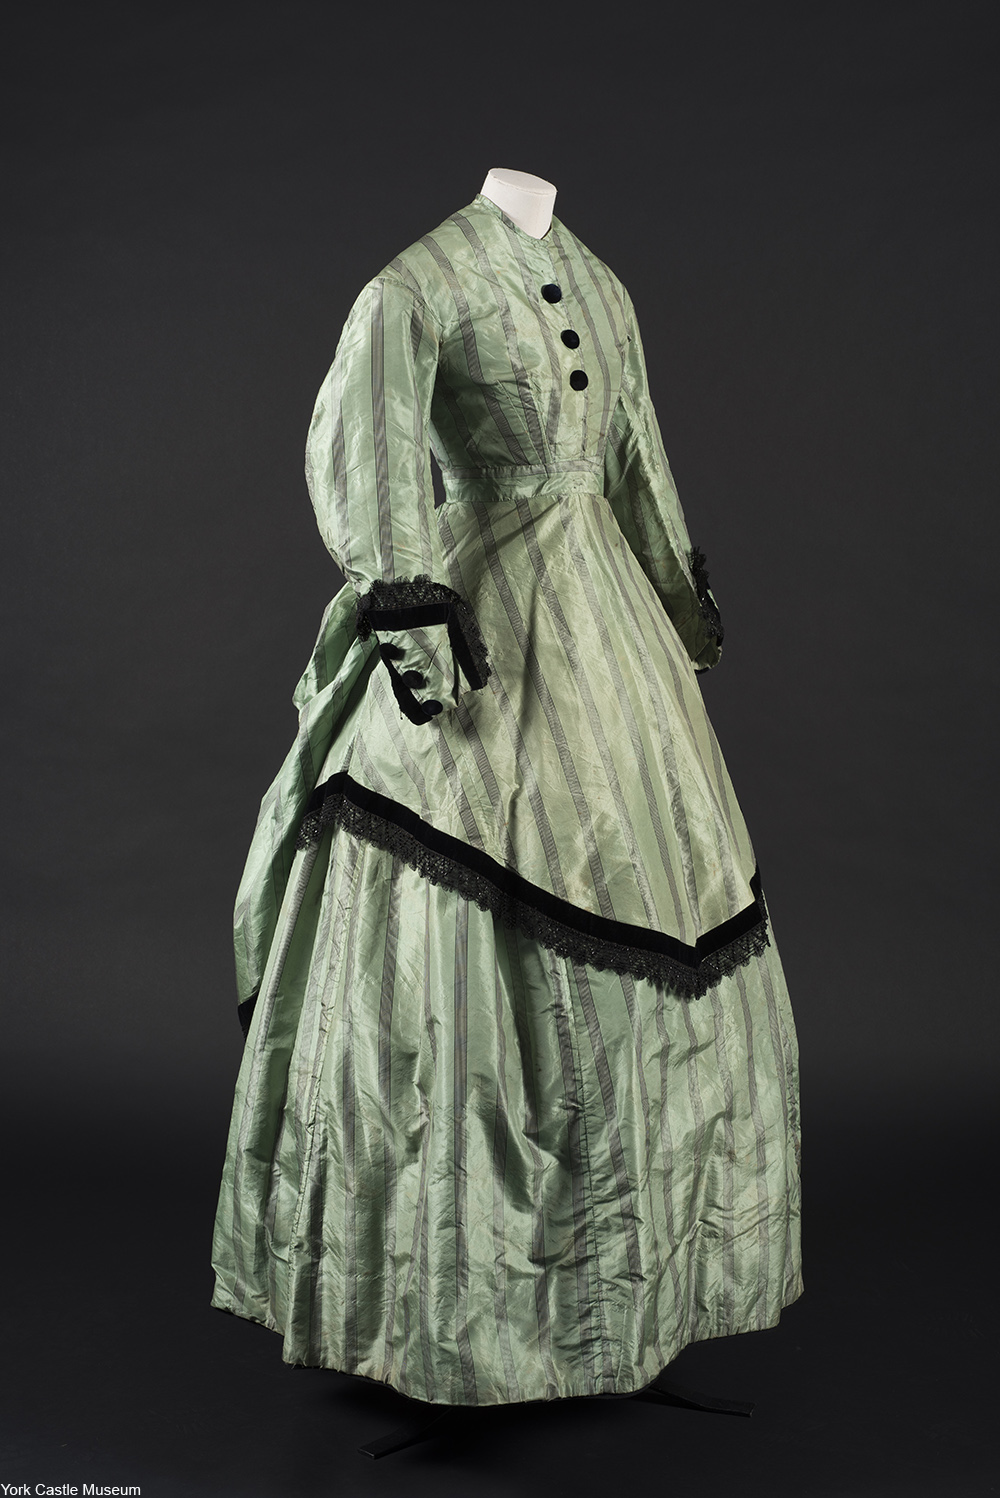 Victorian dress in green and black made with arsenic dyes that is still leeching poison